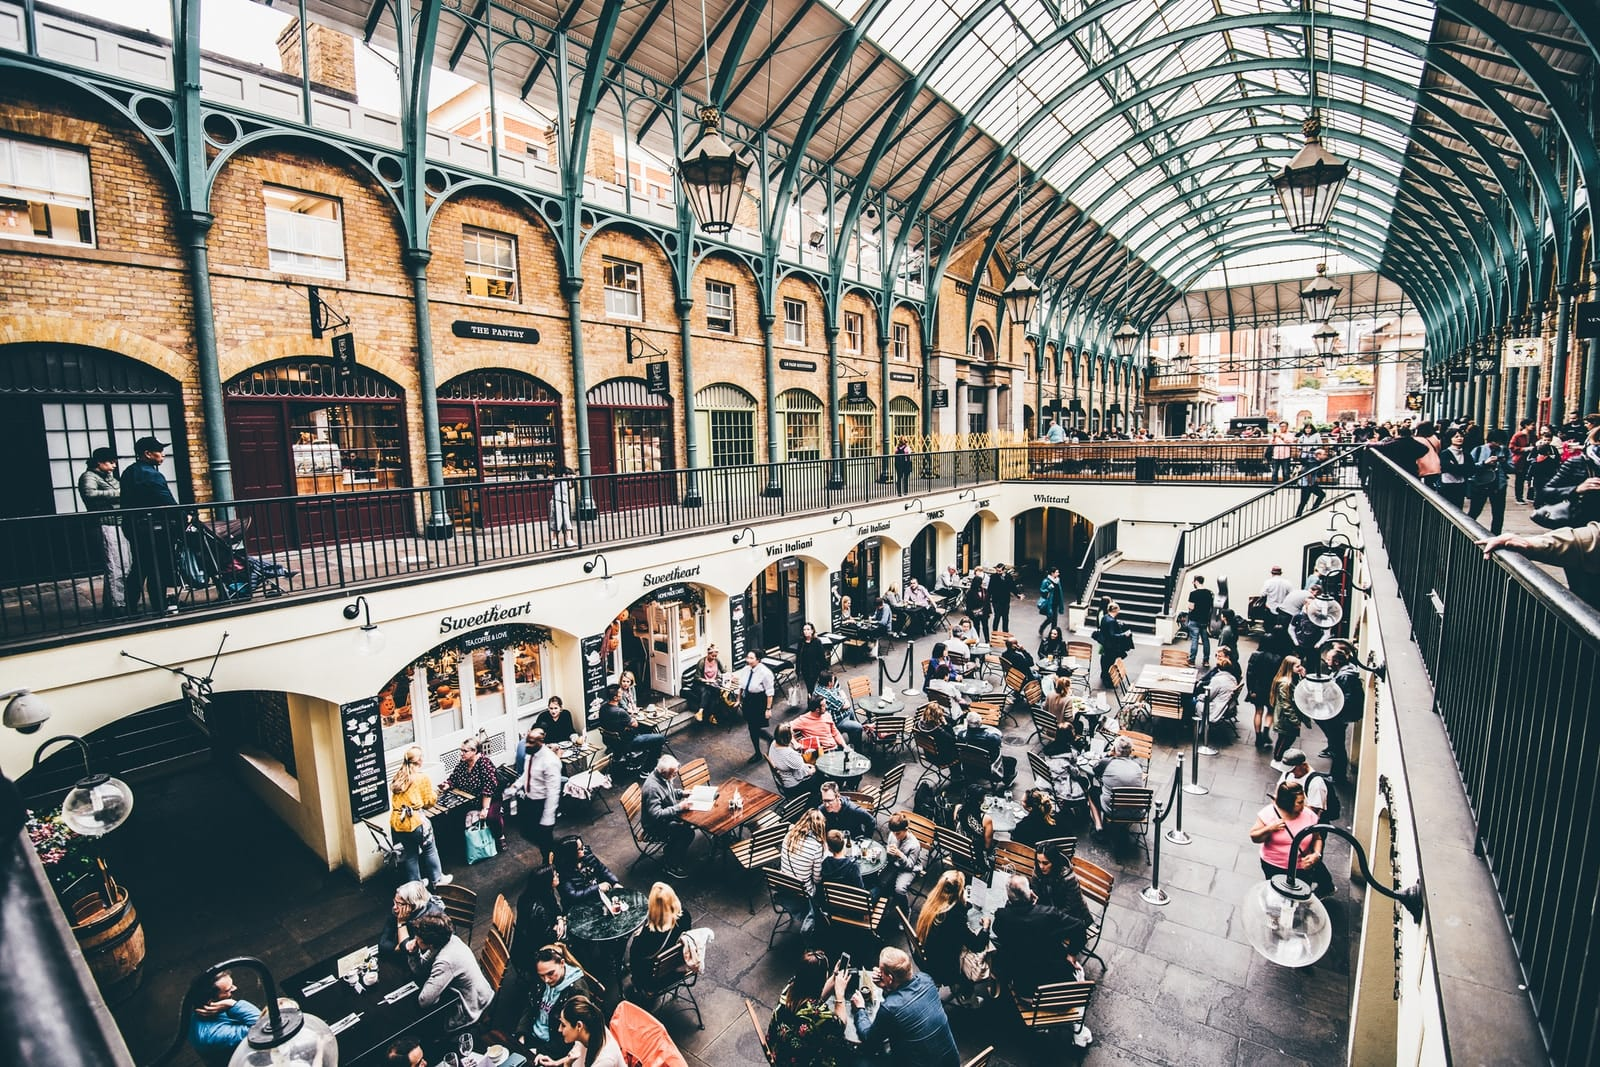 Covent Garden Market, London - One Day in London Itinerary